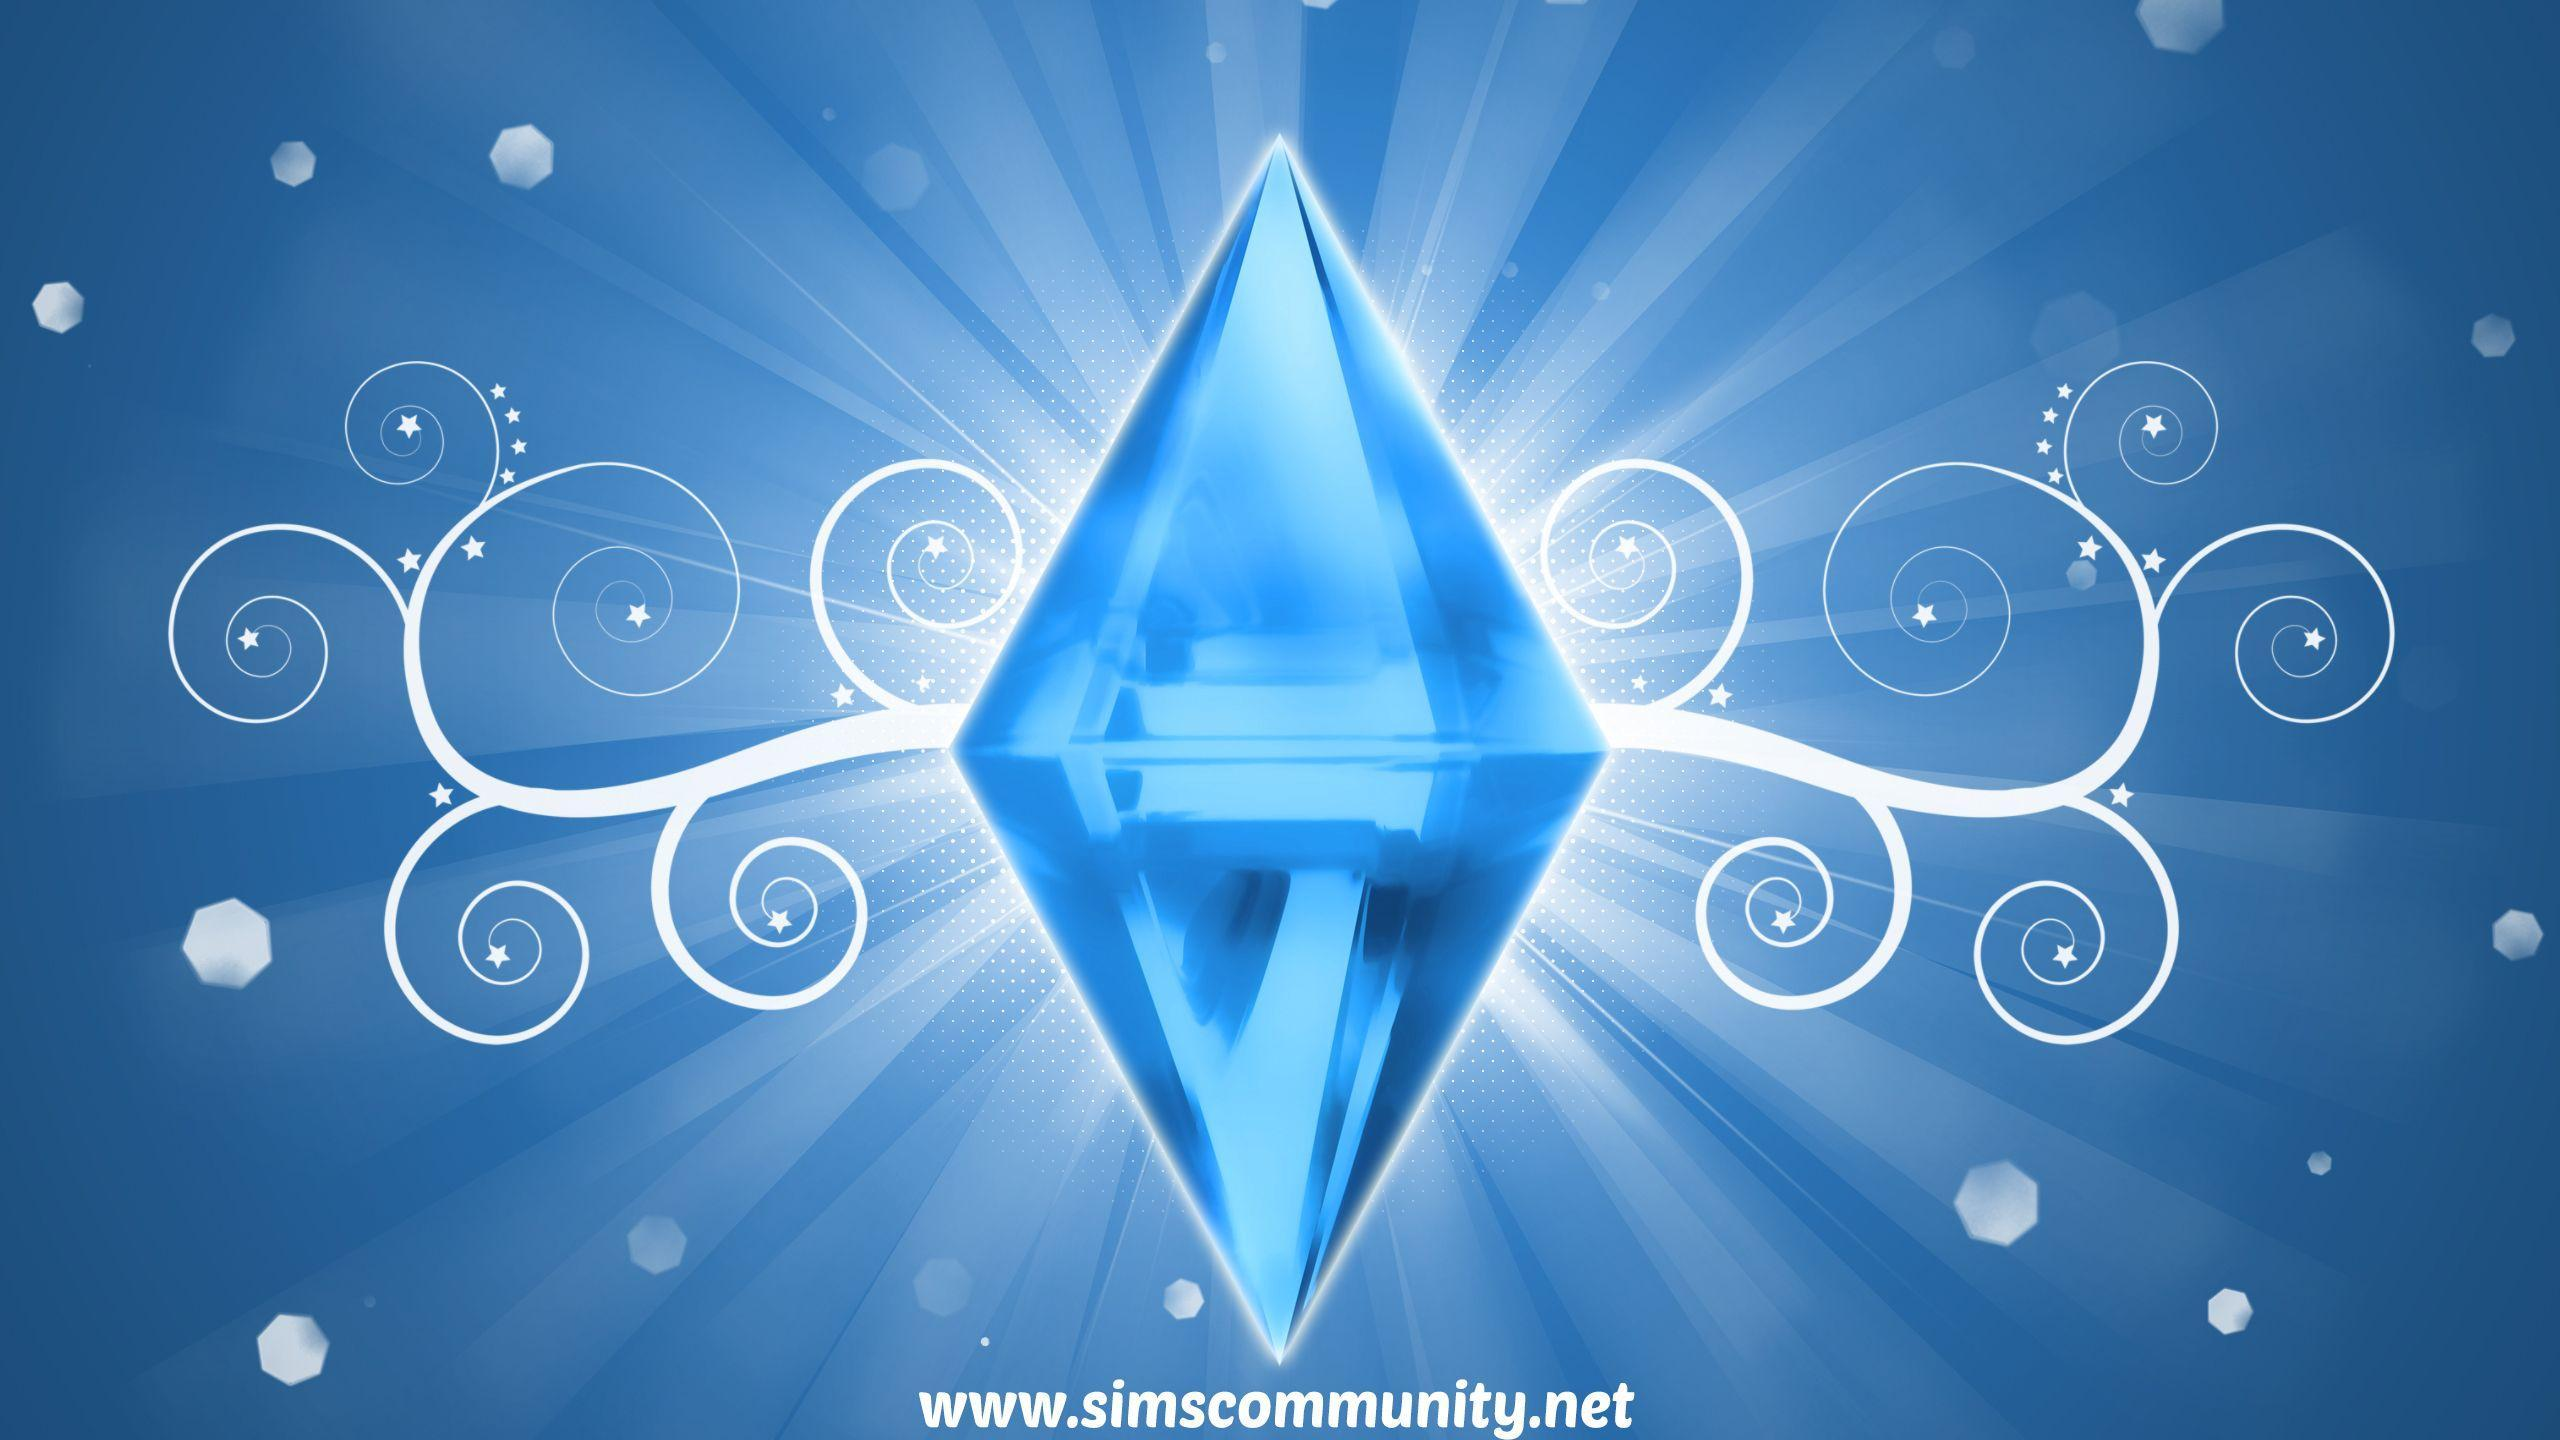 Wallpapers - Sims Community